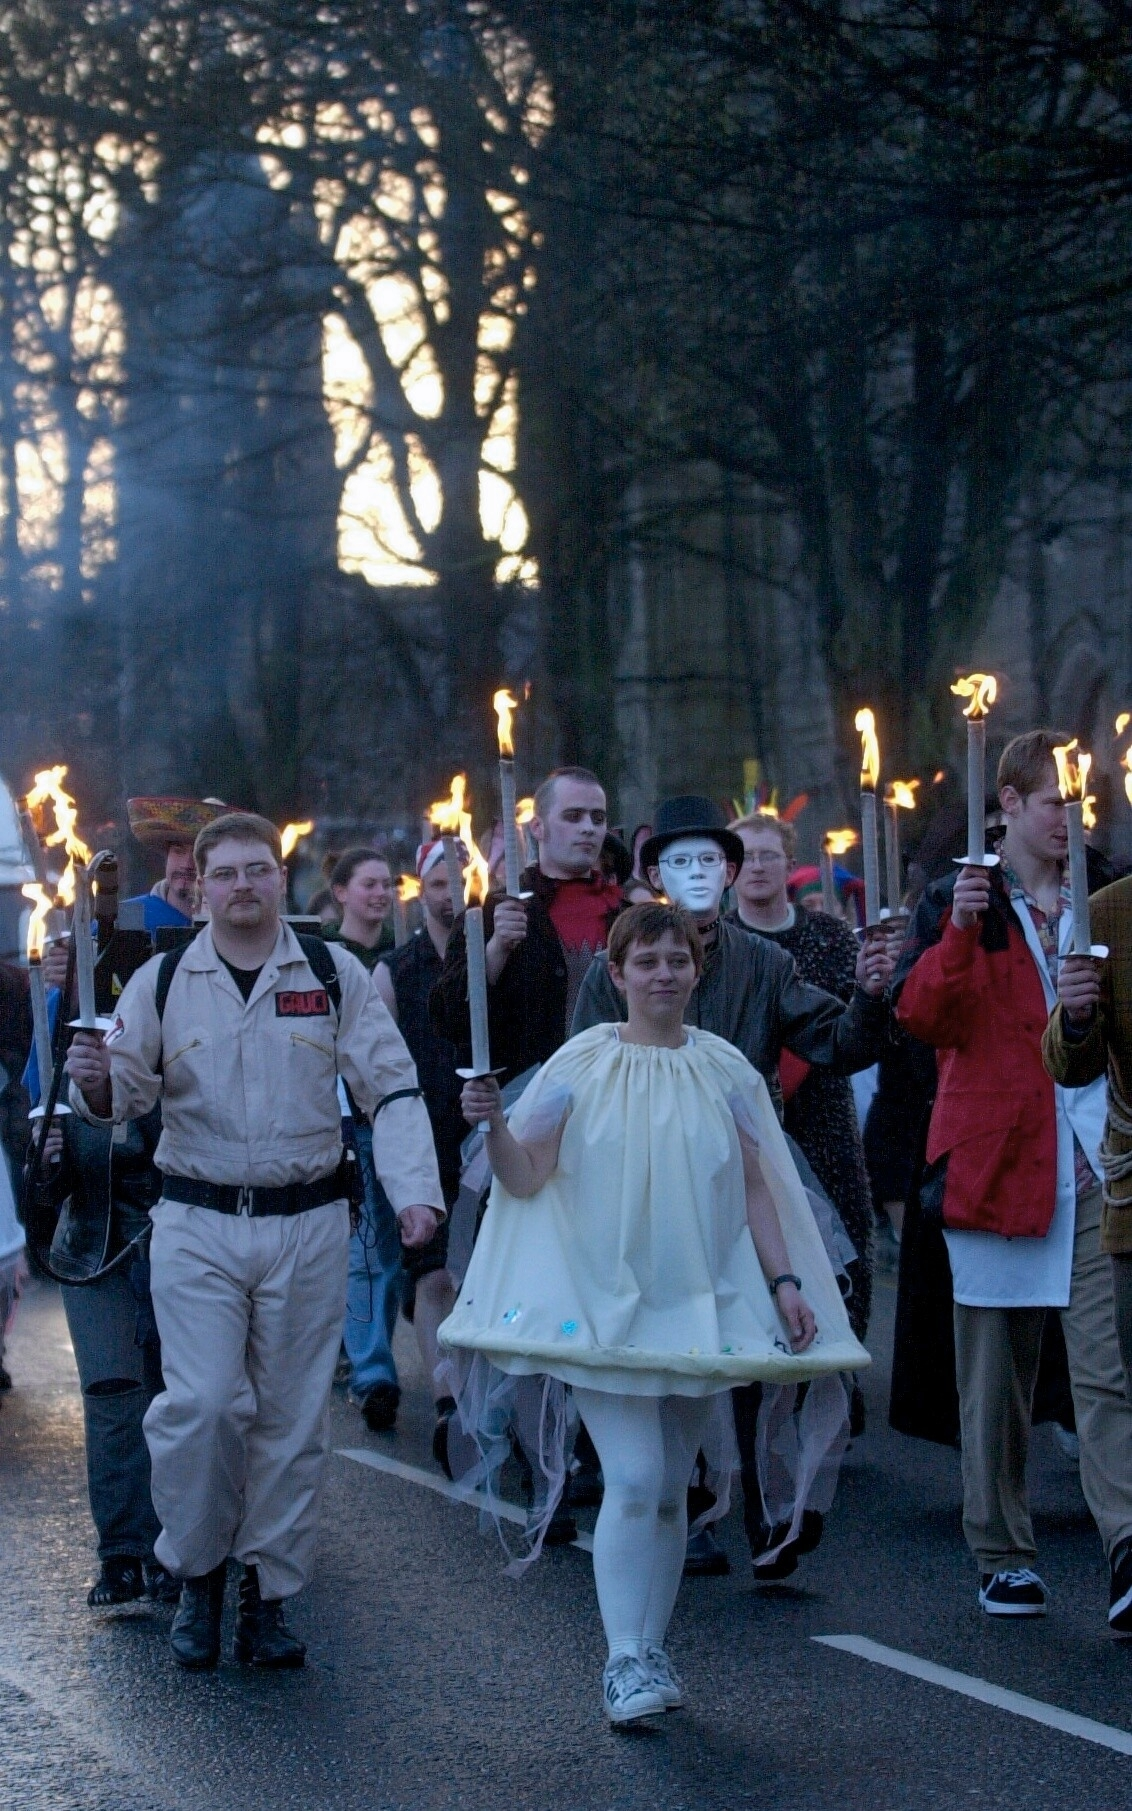 Aberdeen students torcher parade heads down Albyn Place. Pic by Raymond Besant.